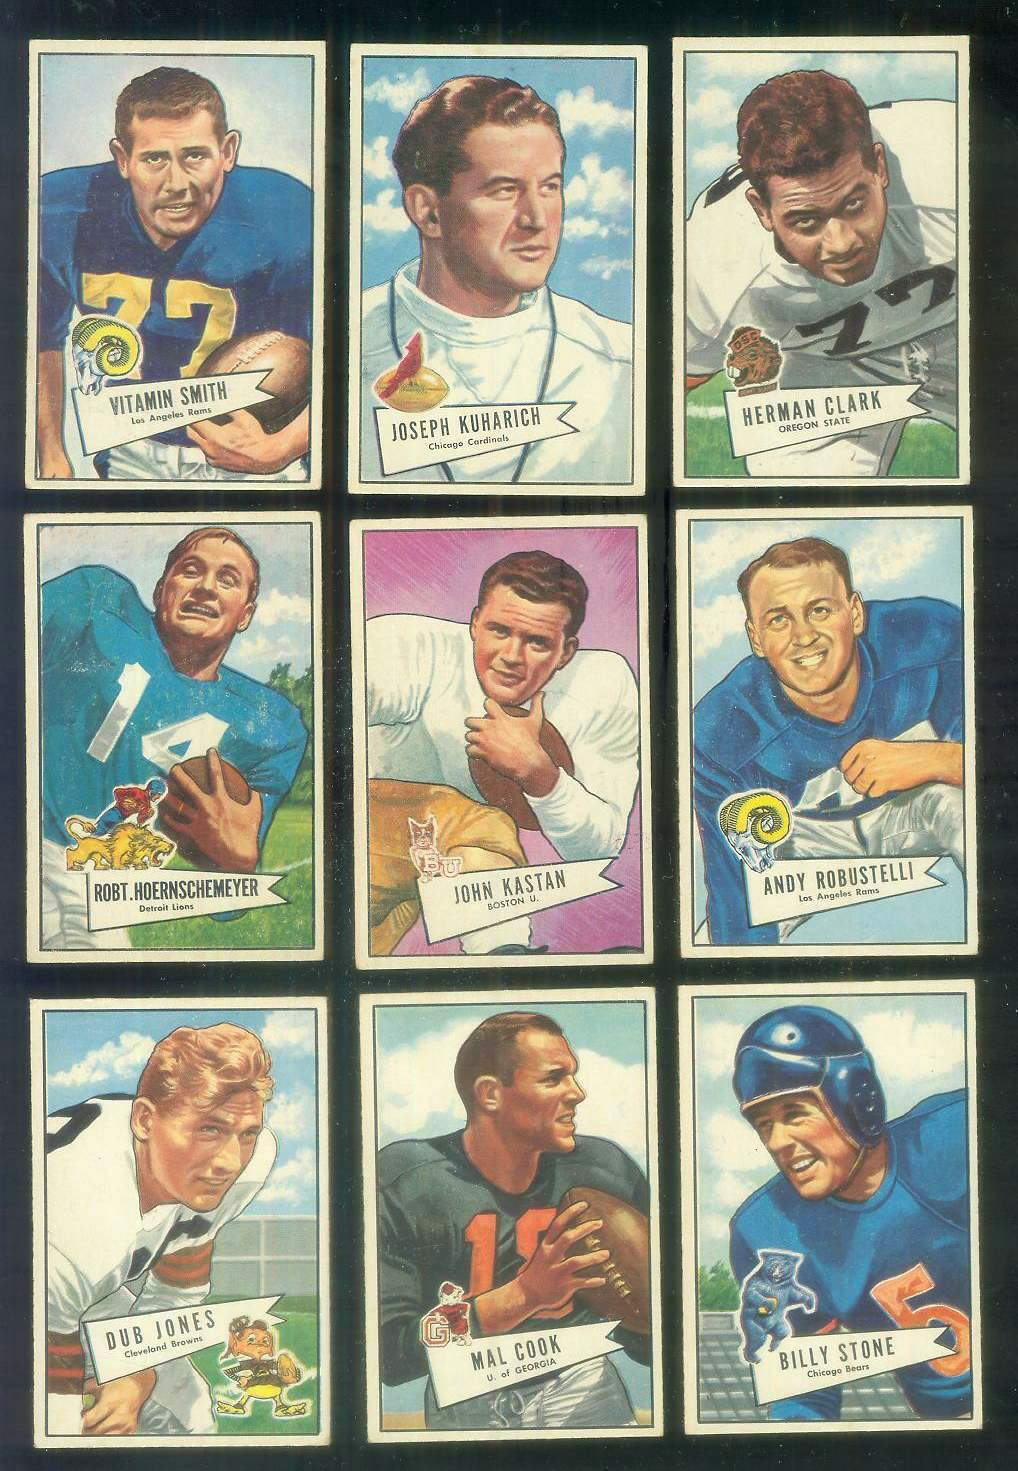 1952 Bowman Small FB #.81 John Kastan ROOKIE (New York Giants) Football cards value